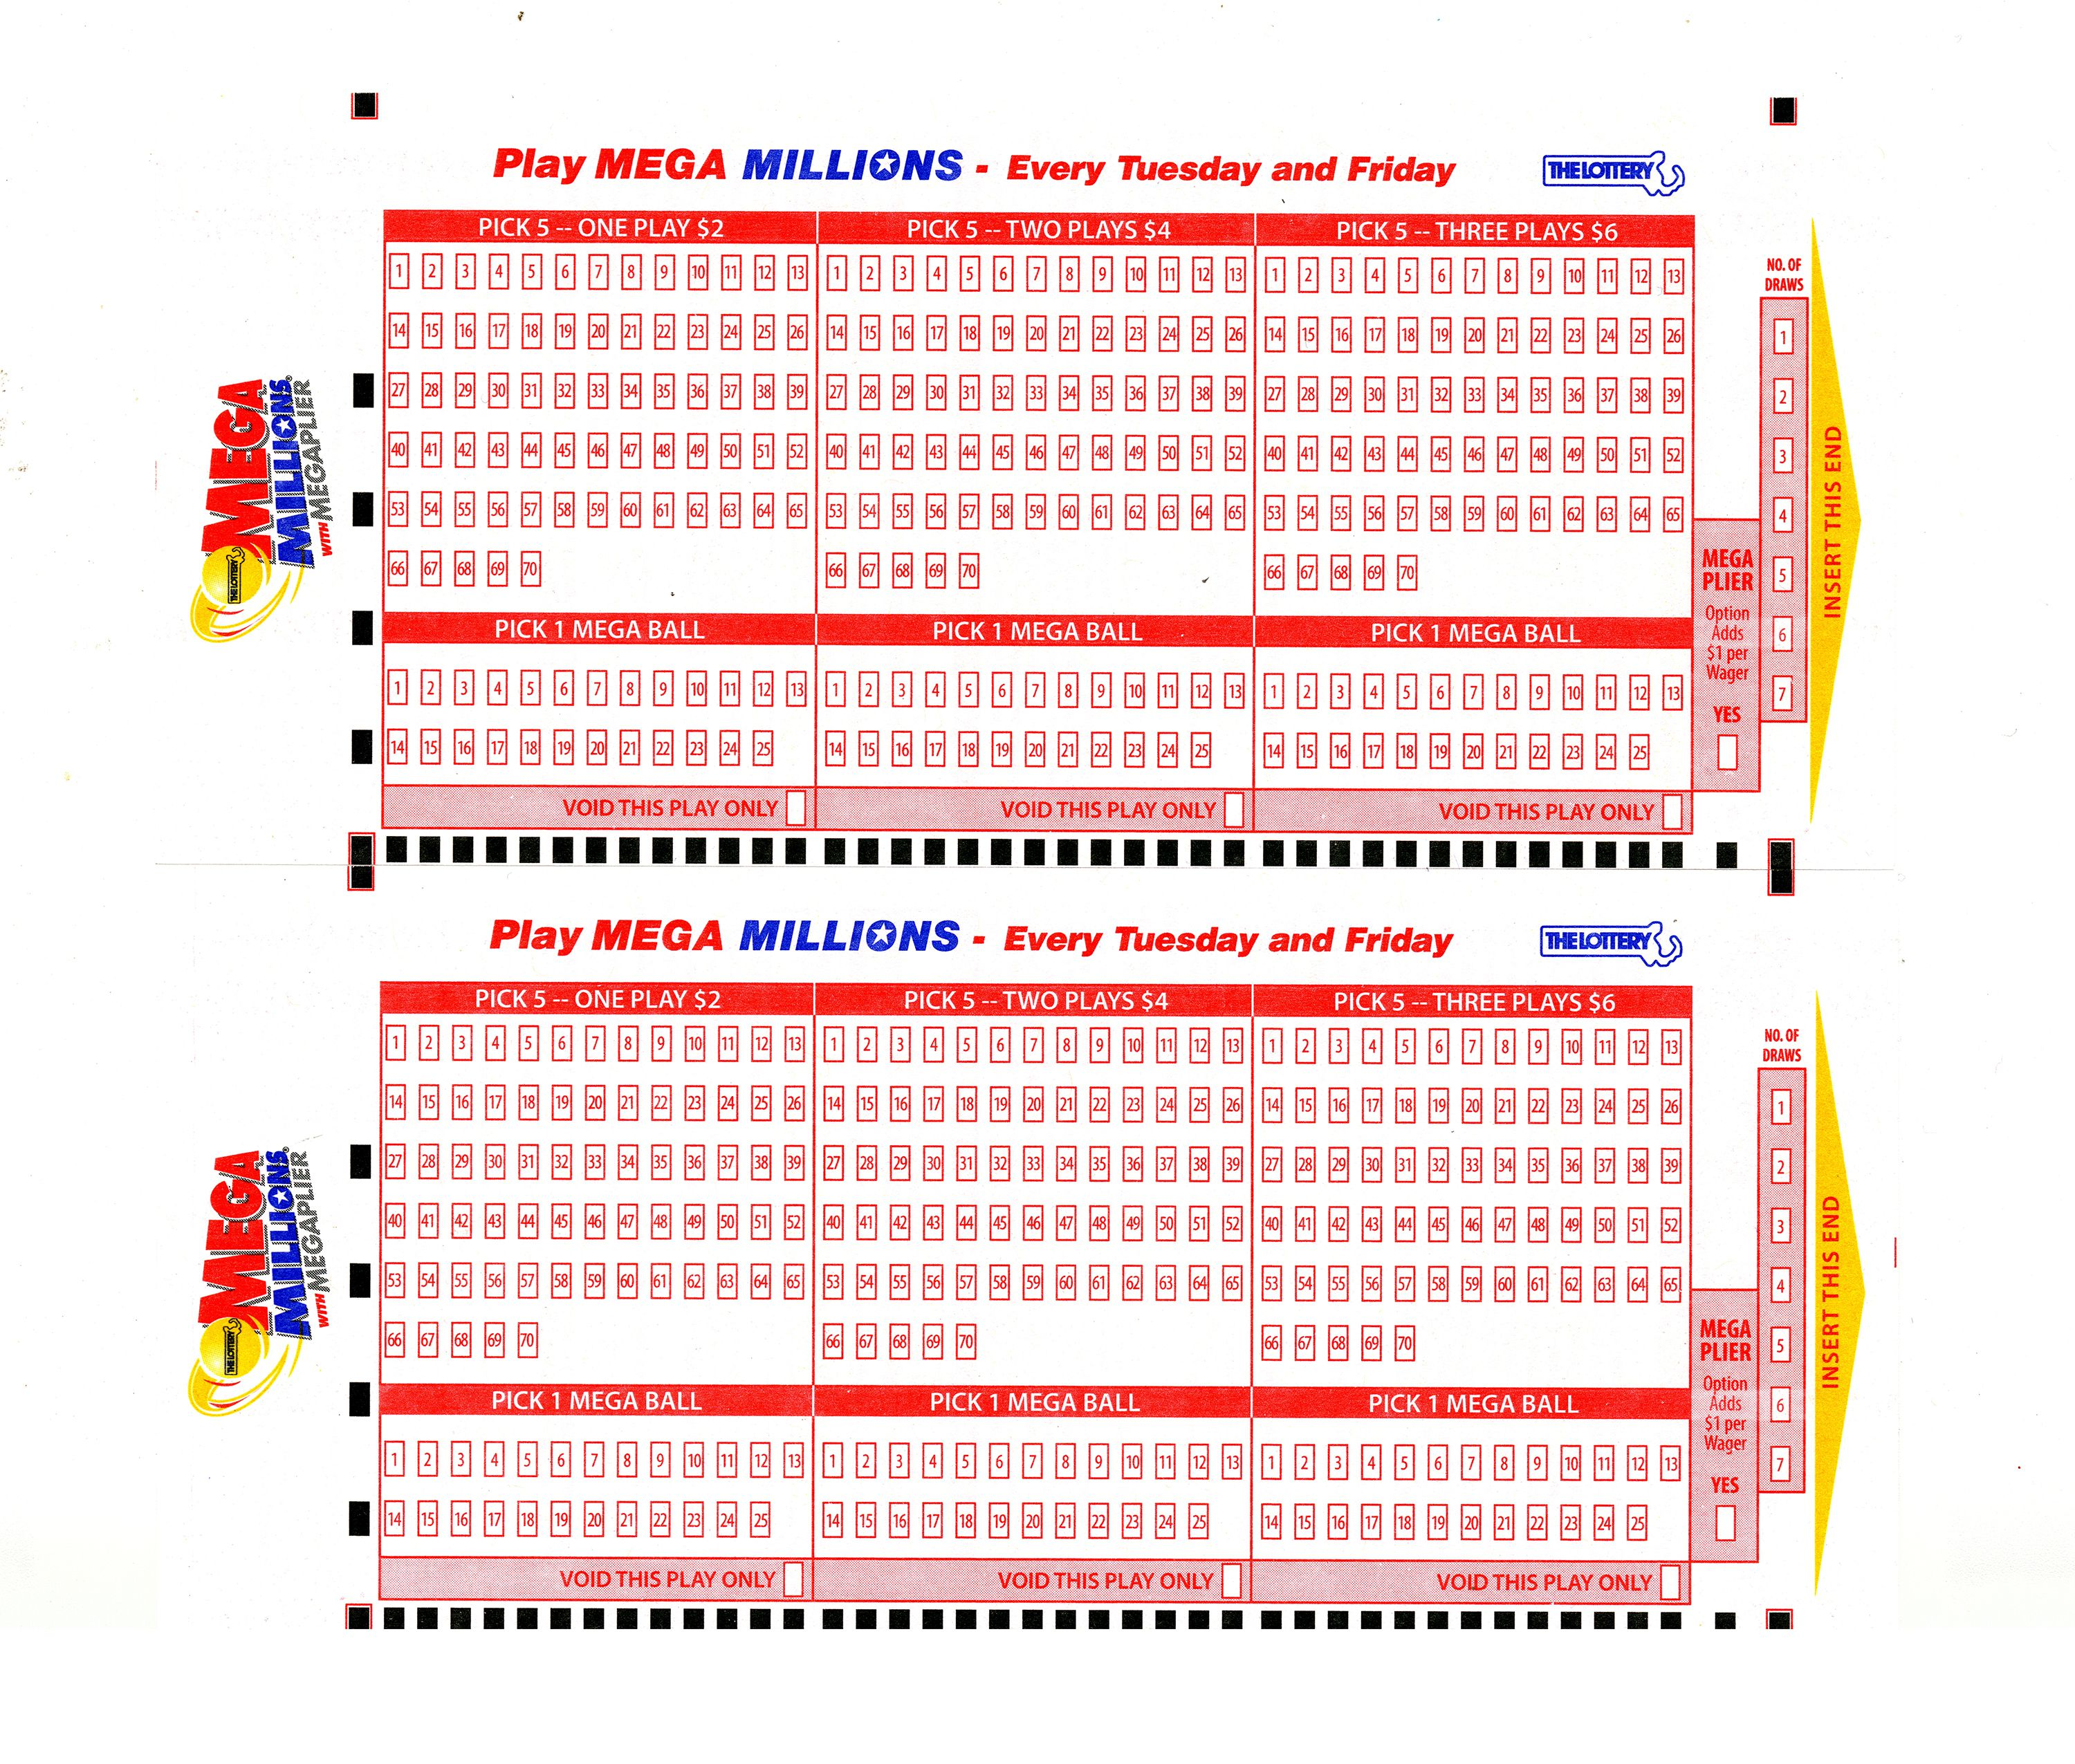 Here's how to play Mega Millions if you've never done it before